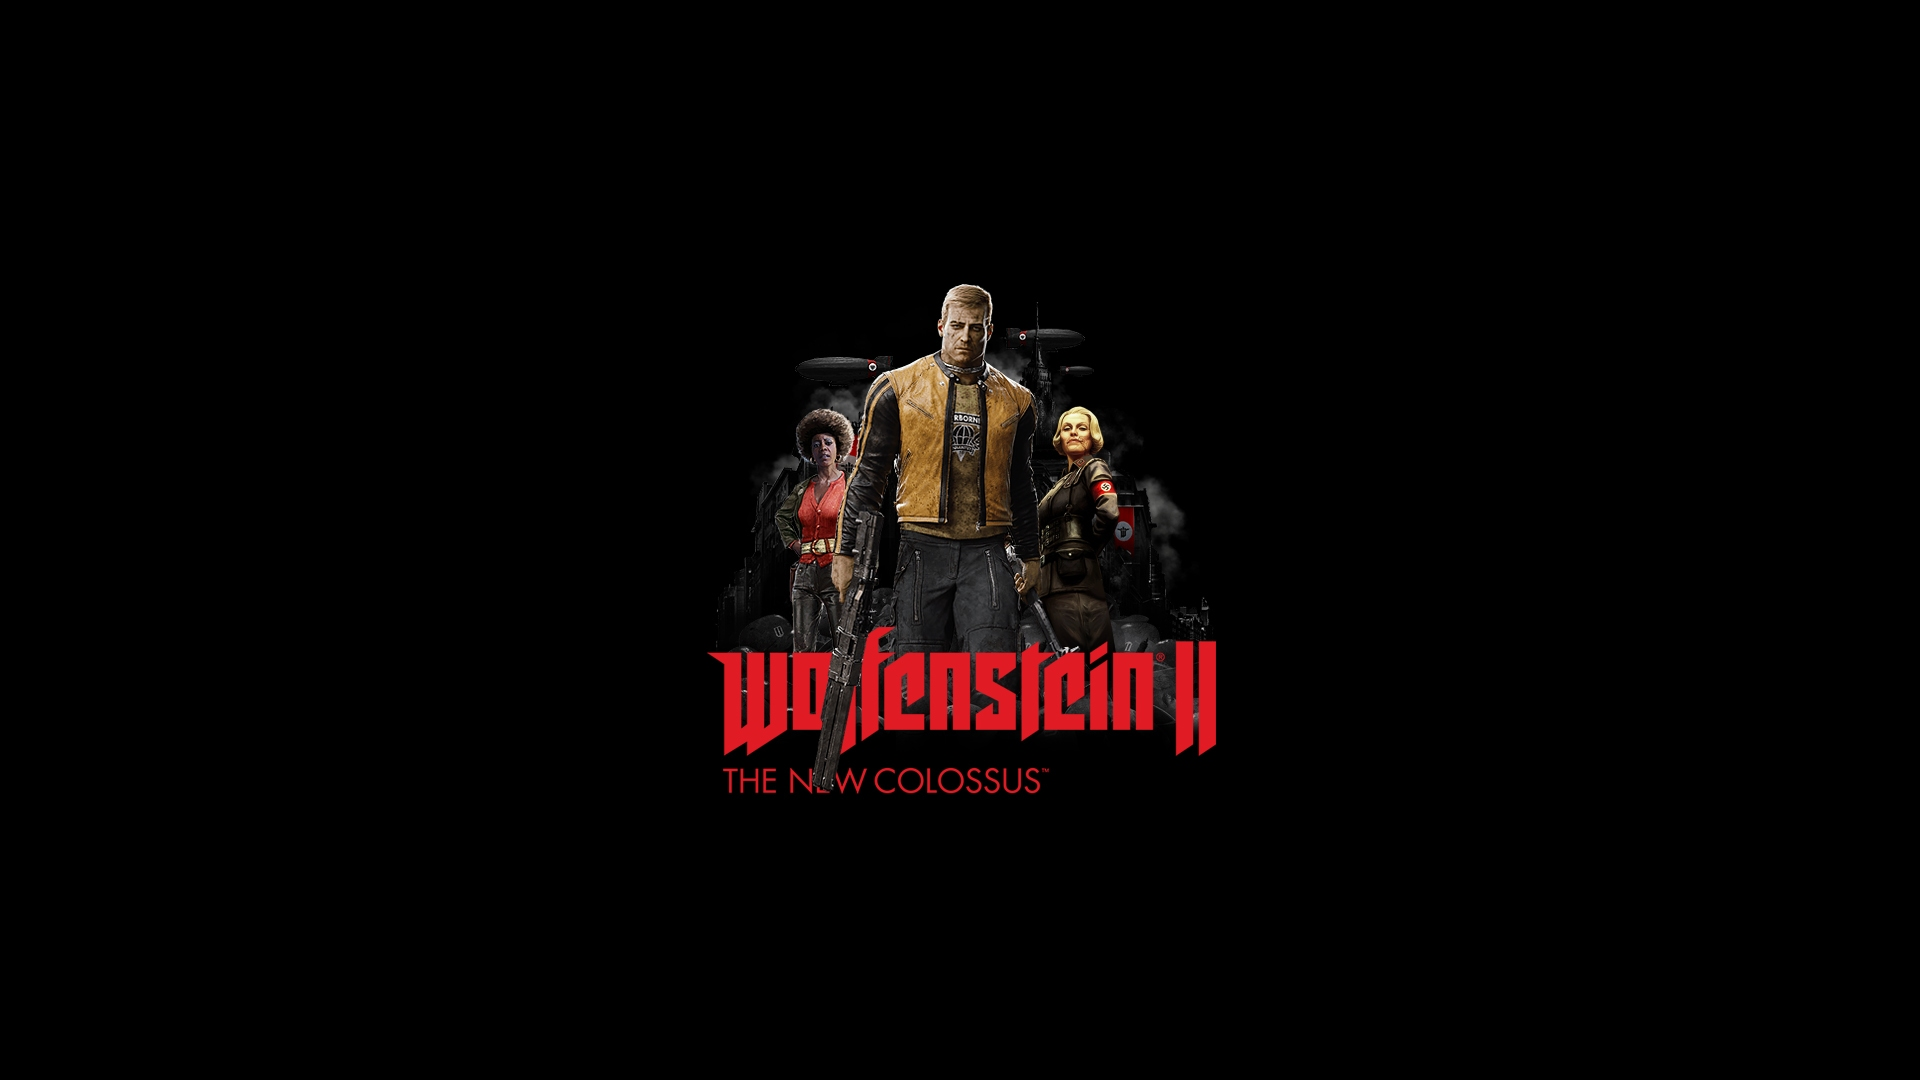 Wolfenstein Ii The New Colossus Wallpapers Posted By Ethan Johnson